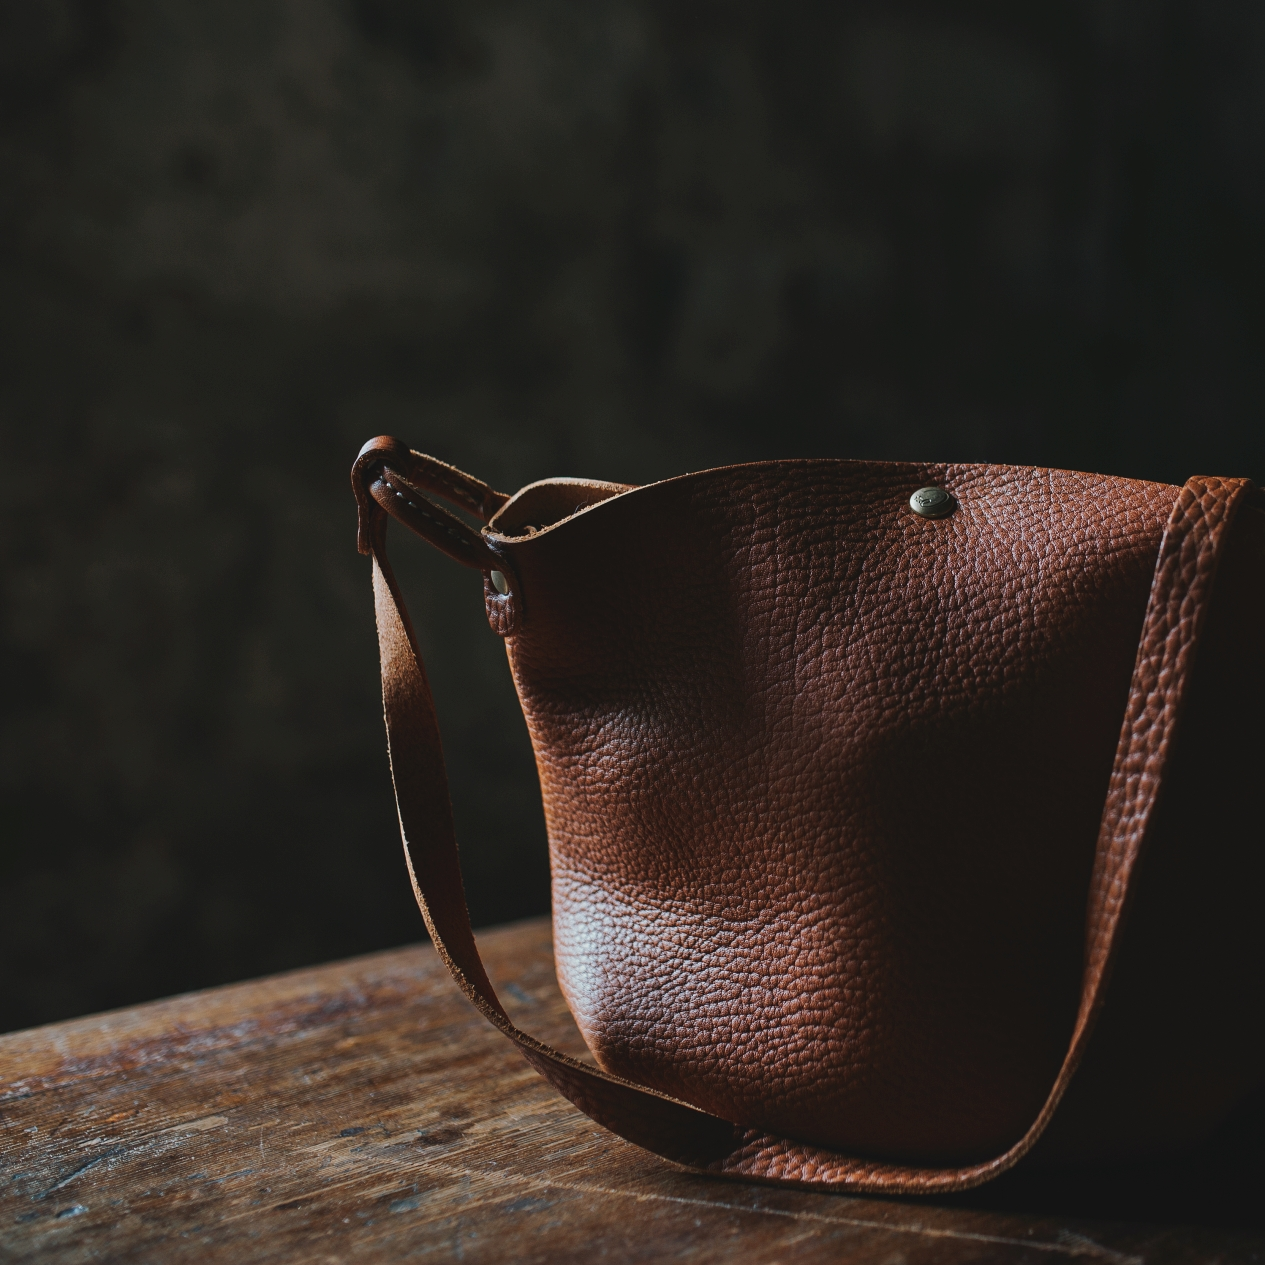 Brown leather handbag sits on a table during a photo shoot in Tasmania.